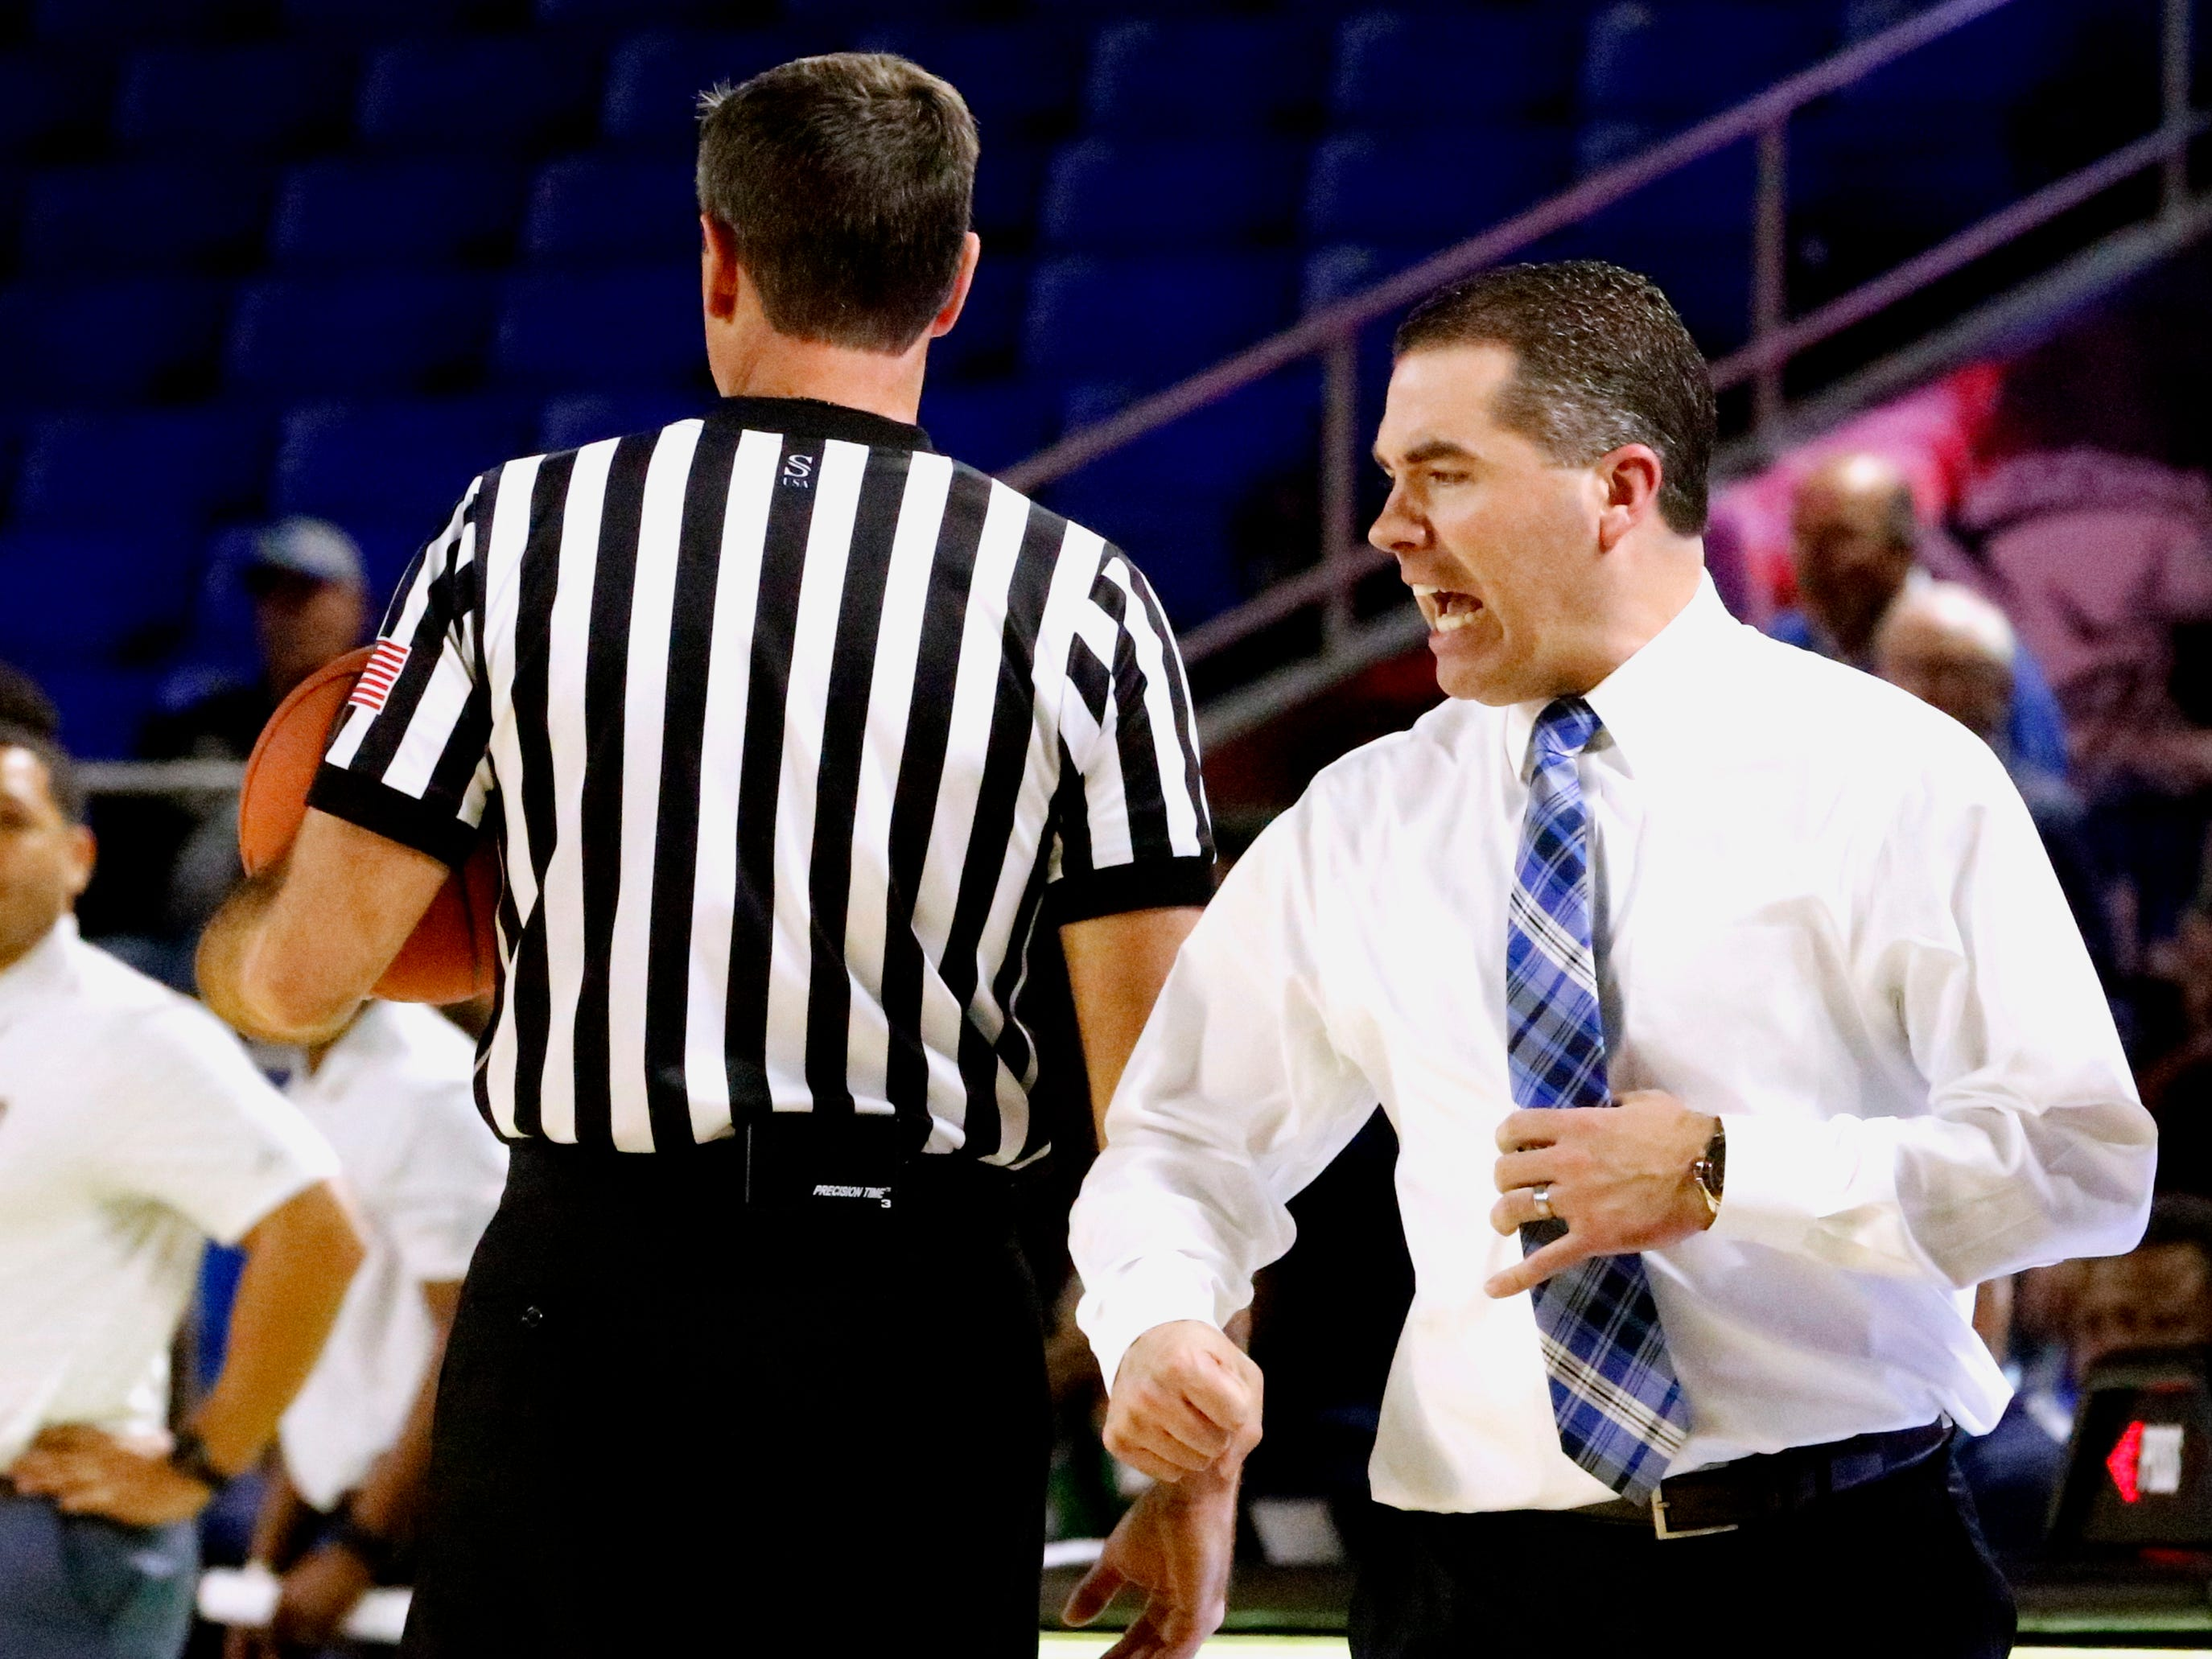 MTSU's head coach Nick McDevitt argued  call during the game against FIU on Thursday Jan. 3, 2019, at MTSU.